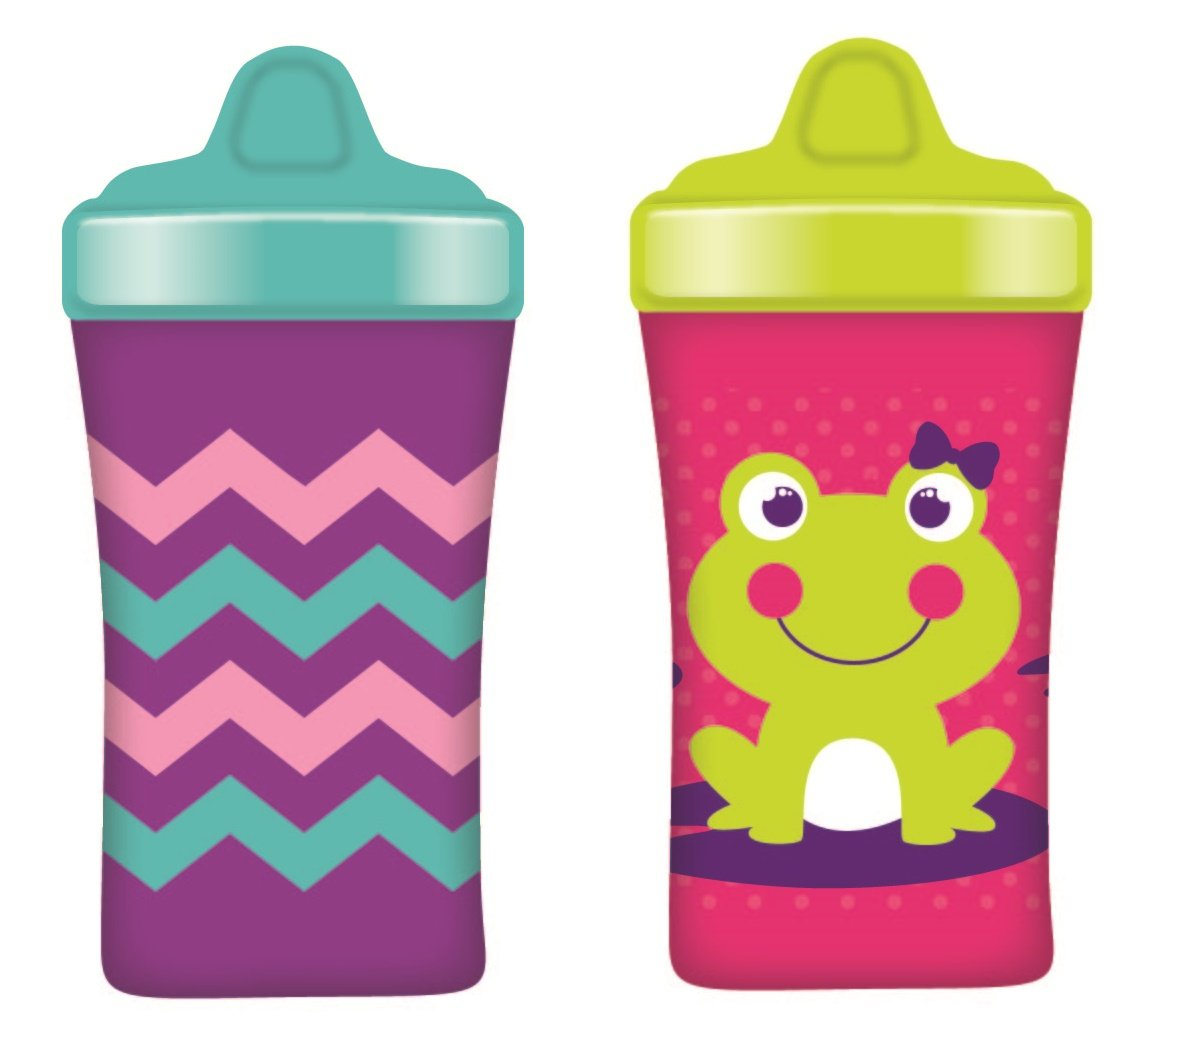 Gerber Graduates Advance Developmental Hard Spout Sippy Cup in Assorted Colors-2 Pack, 10-Ounce (Theme May Vary) NUK 78655